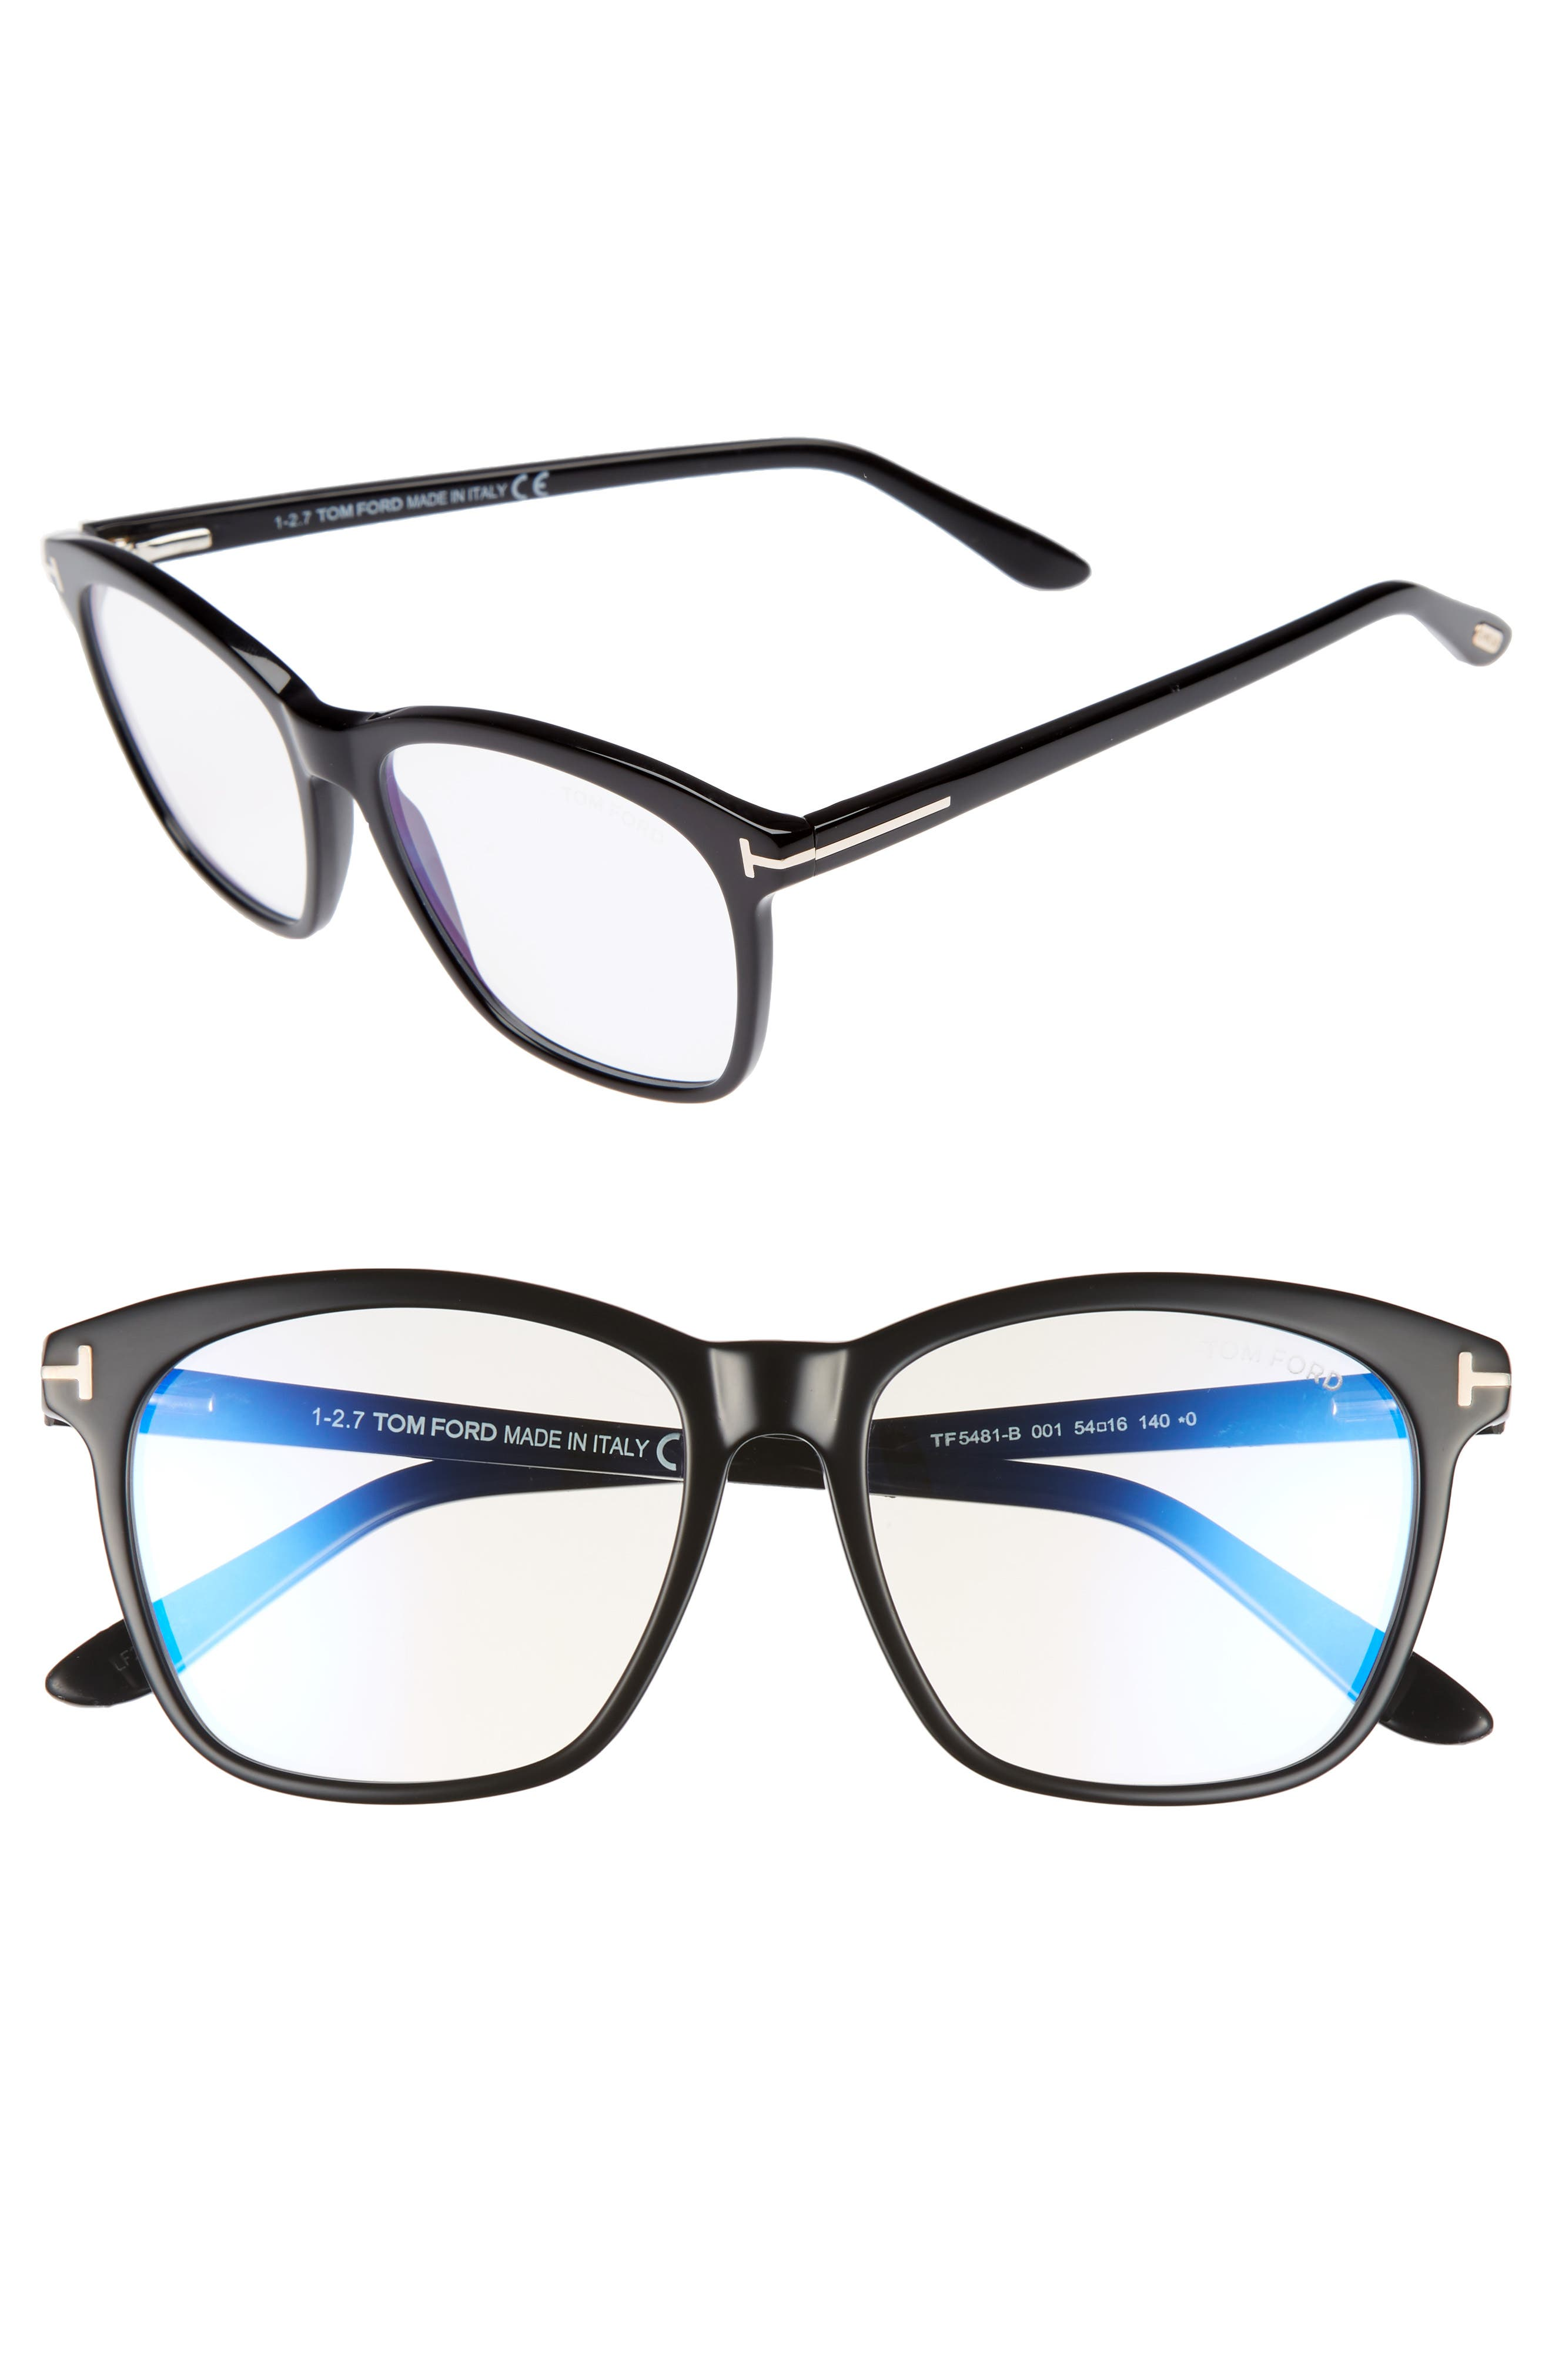 54mm Blue Block Optical Glasses,                             Main thumbnail 1, color,                             BLACK/ BLUE